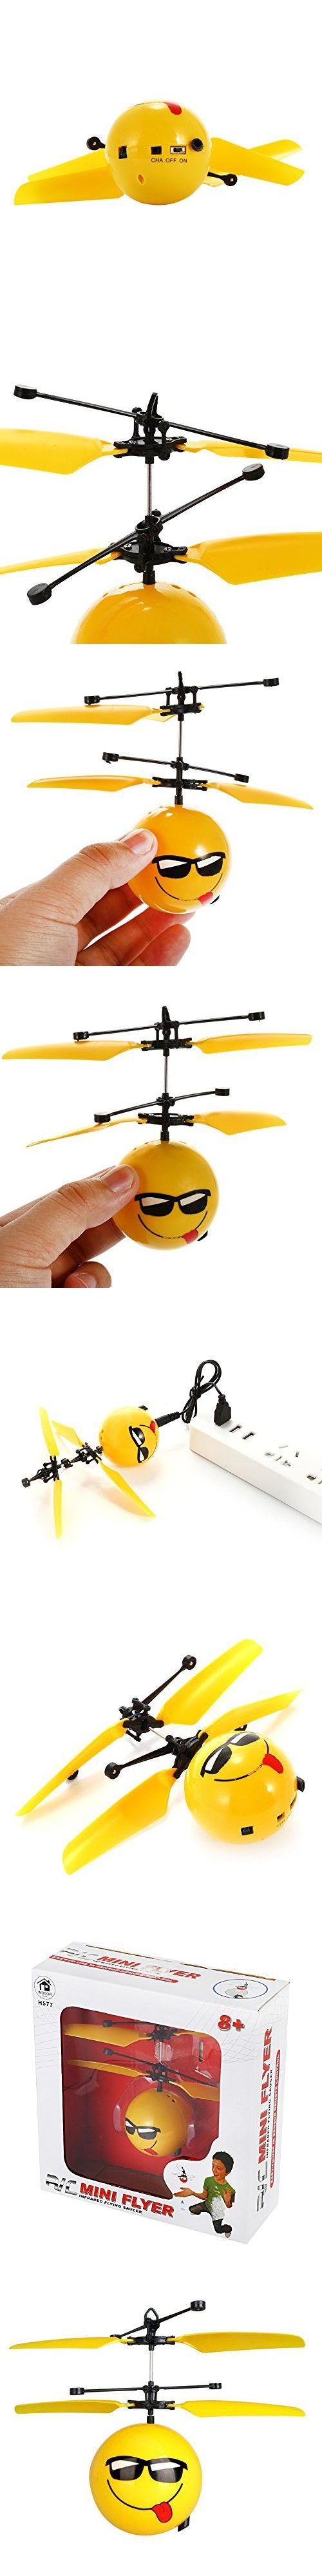 Lanlan 1PCS Infrared Sensor Hand Induced Flight Helicopter Ball Emoji Flying Heli Ball USB Charge Mini Aircraft ABS Plastic Hobbies RC Drone Kids Birthday Christmas New Year Toy Gift (Smug)